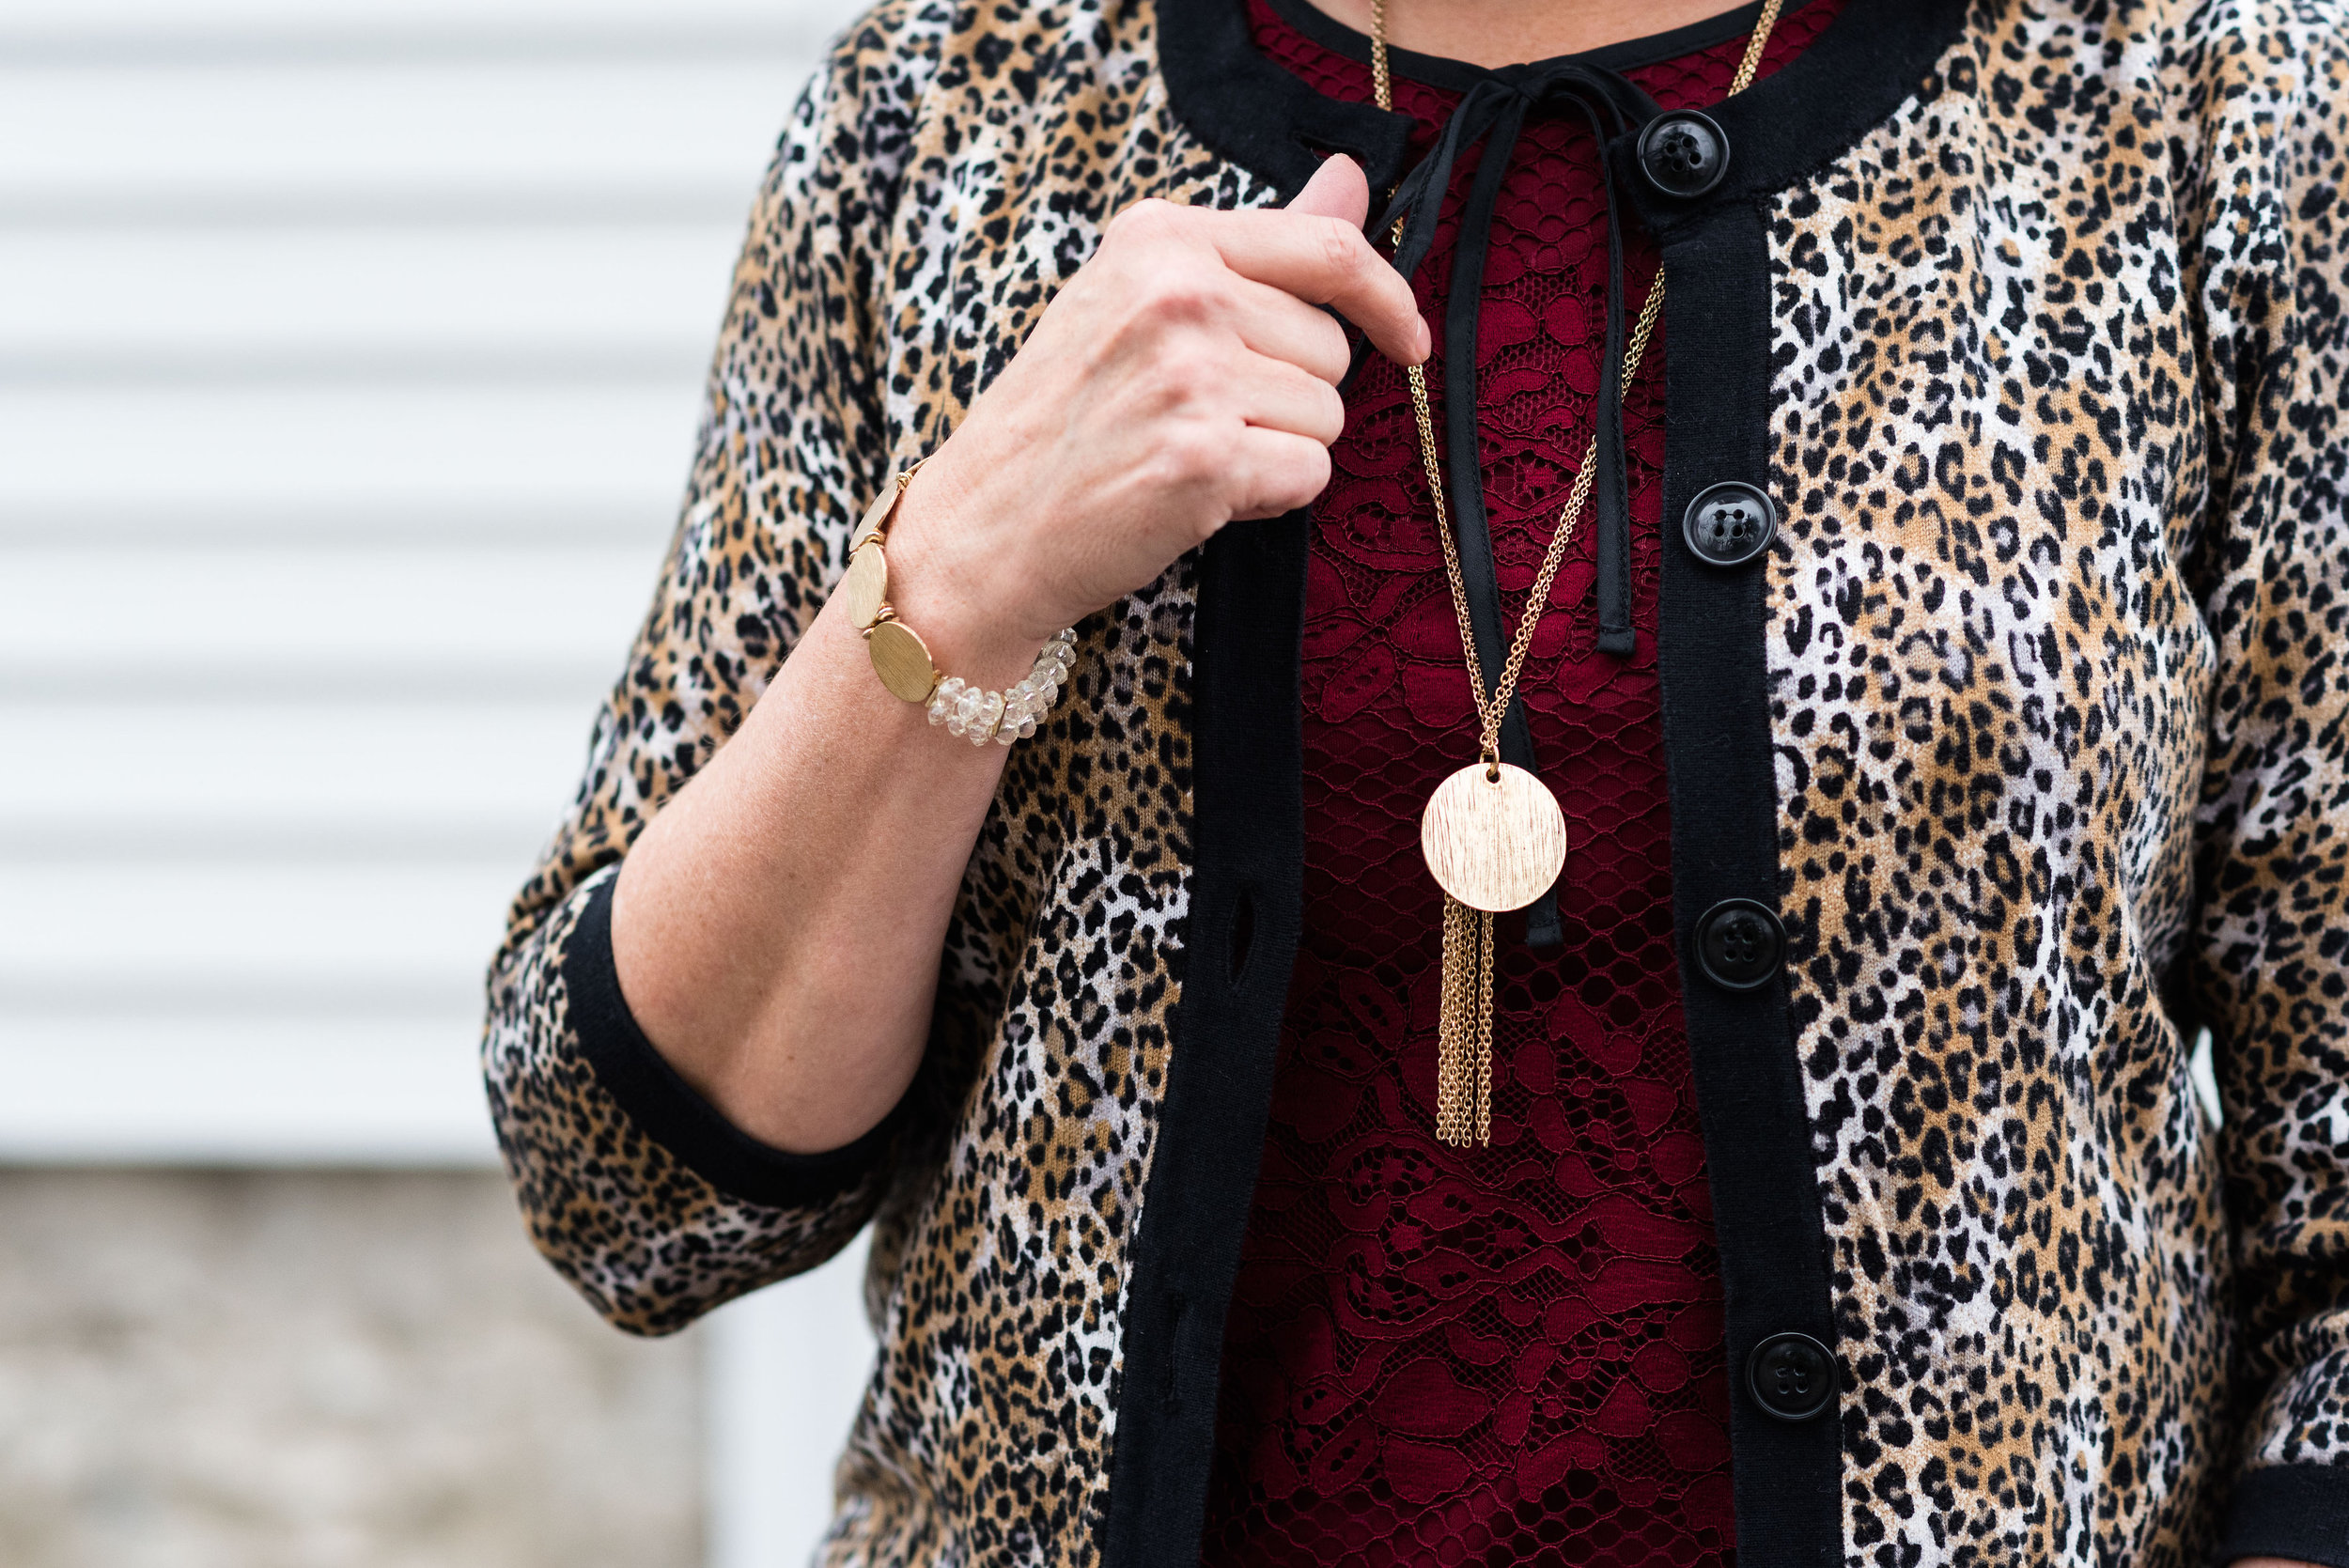 winter outfit - leopard print with maroon/burgundy